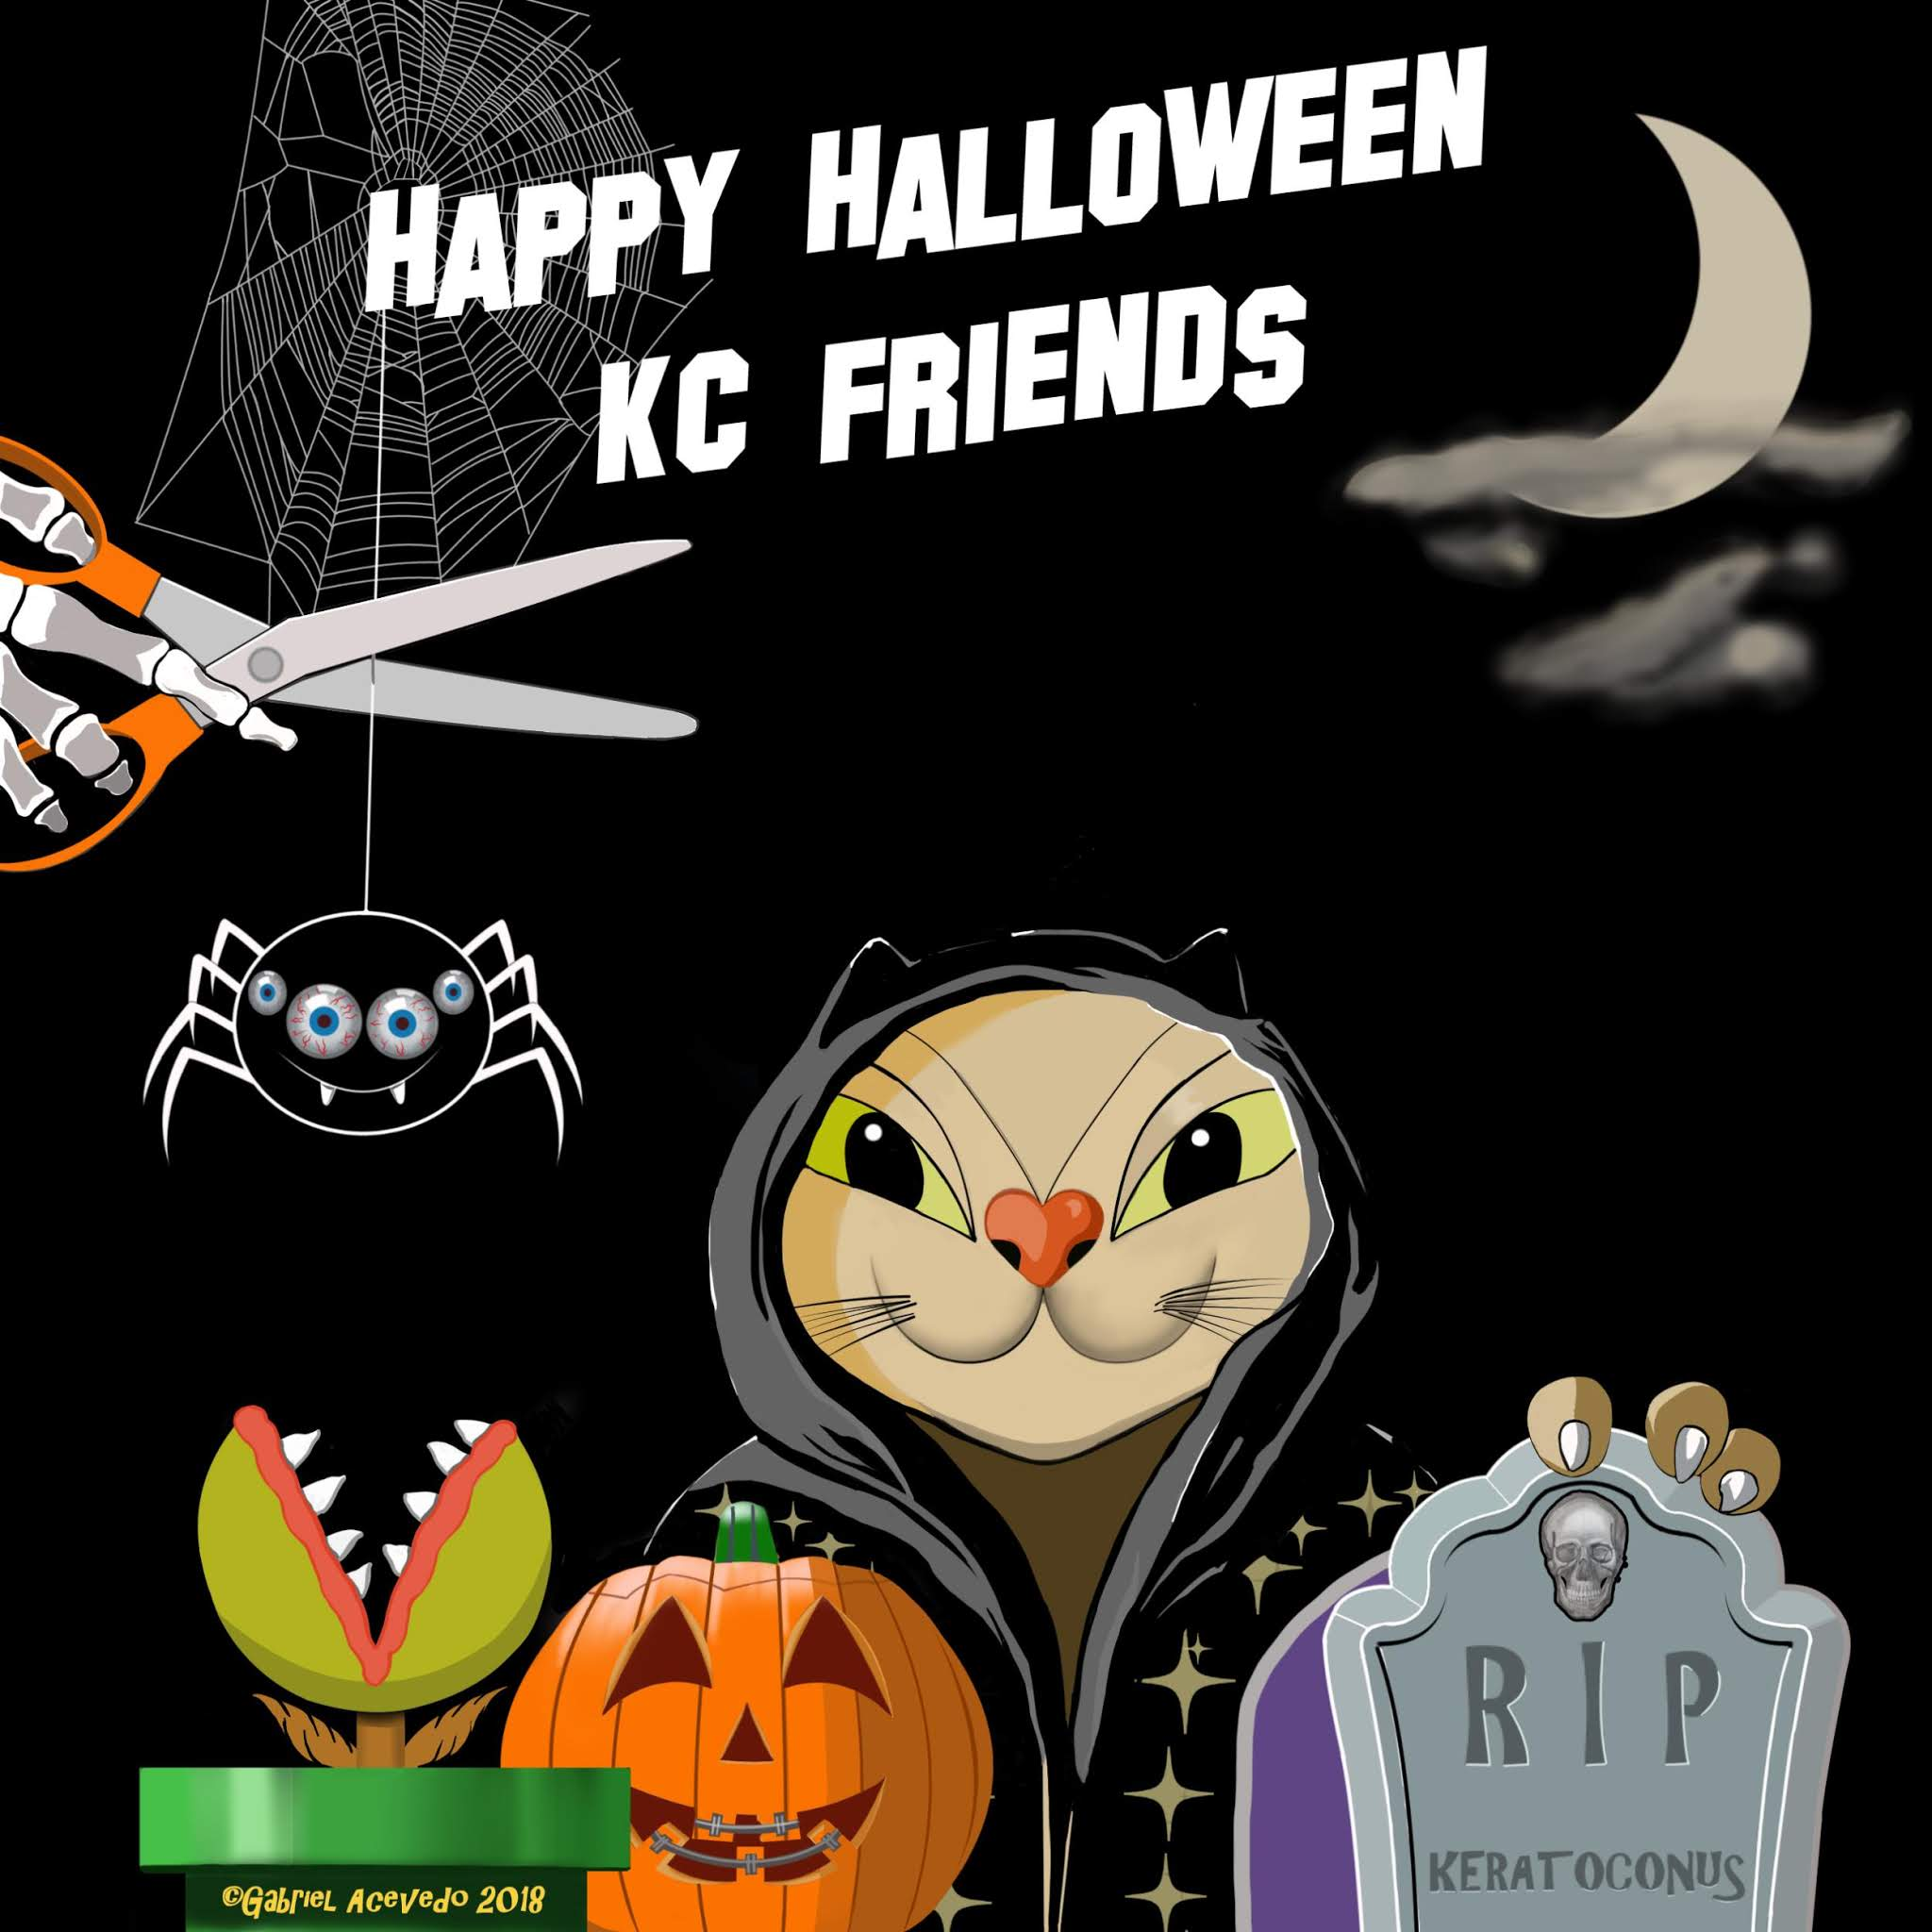 Keratocat wishes you a happy and safe Halloween